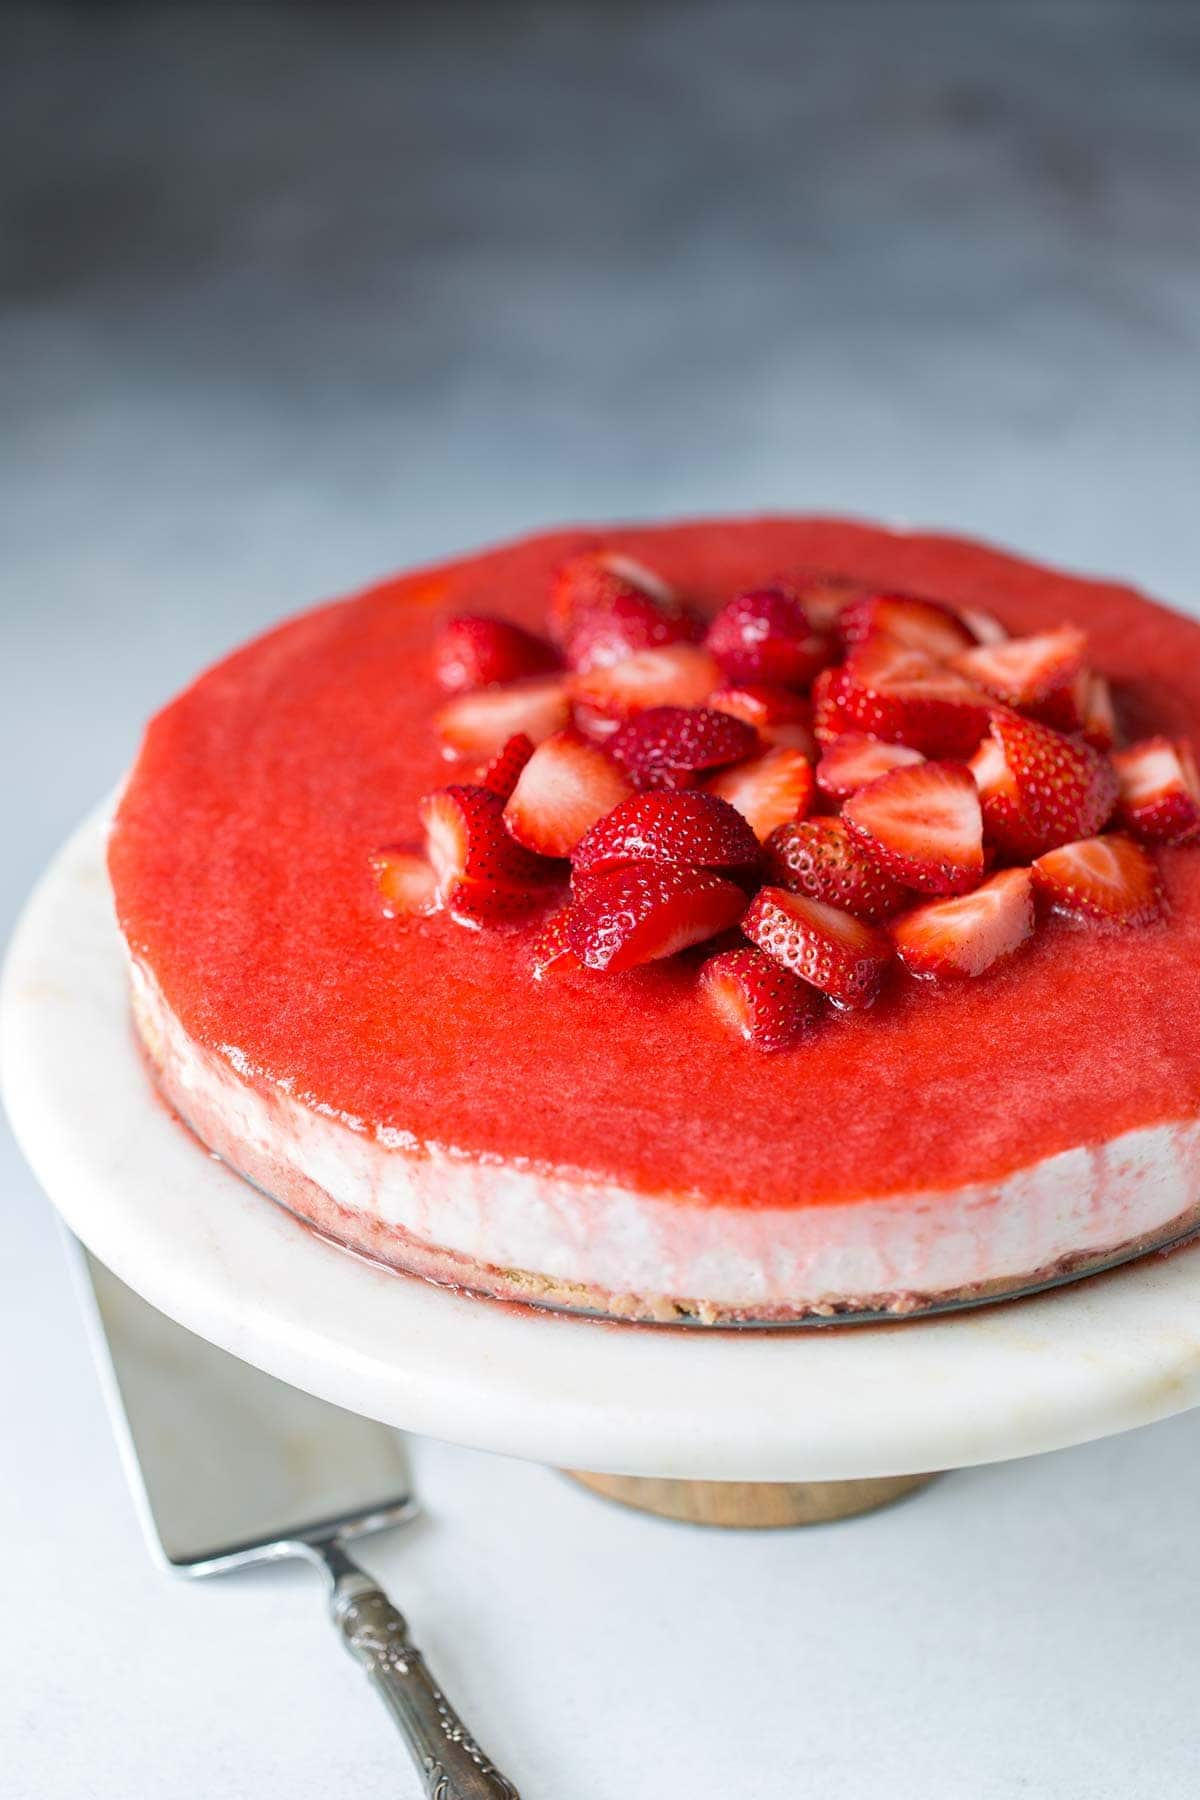 Strawberry No-Bake Cheesecake showcased on a marble and wood cake stand with a silver cake slicer.